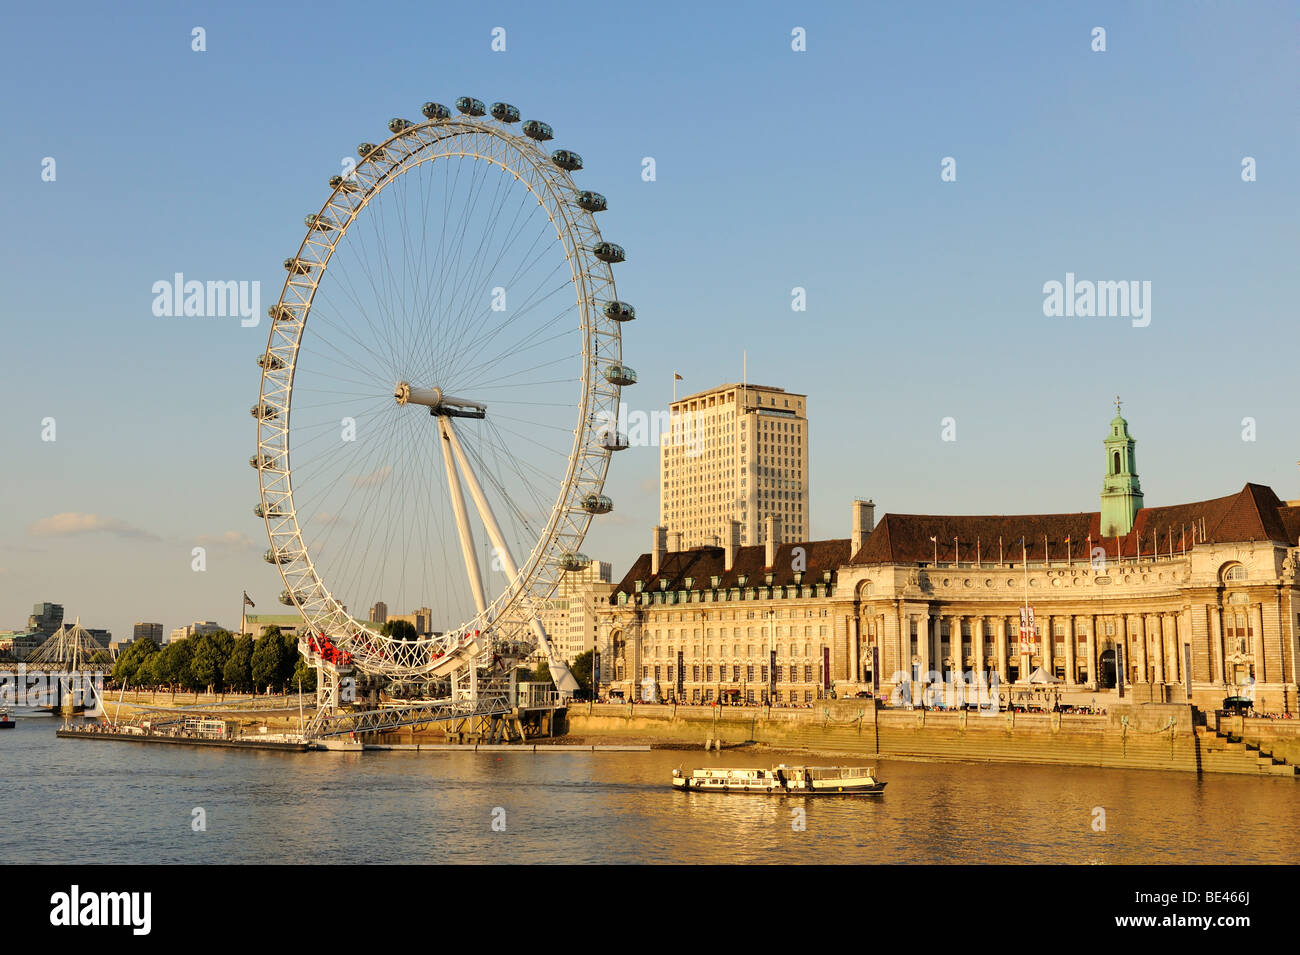 View over the River Thames to the 135 meter high London Eye or Millennium Wheel, London, England, United Kingdom, Stock Photo